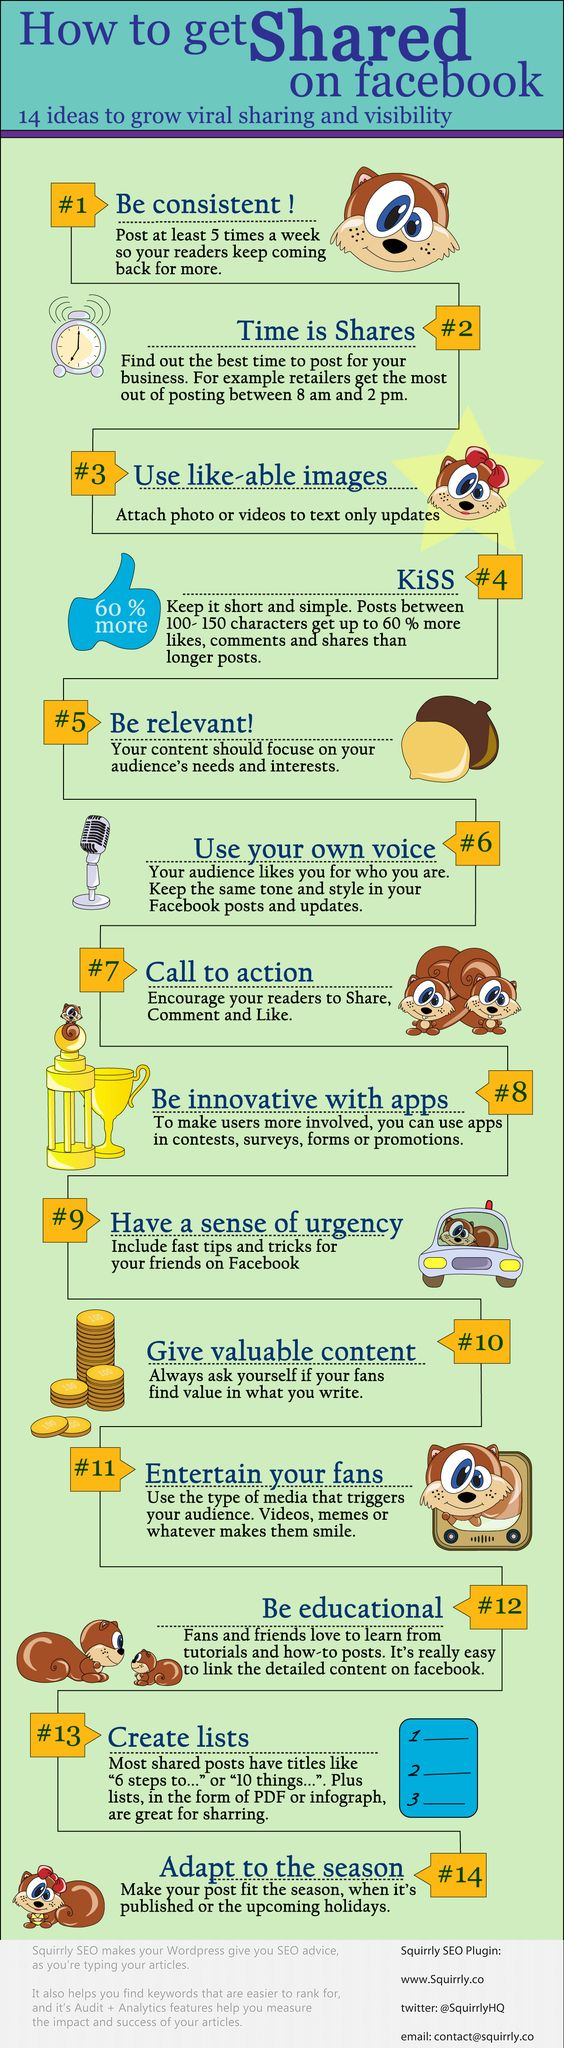 SOCIAL MEDIA -         How To Get Shared On #Facebook: 16 Ideas To Grow Viral Sharing And Visibility [#infographic]   #SocialMedia.